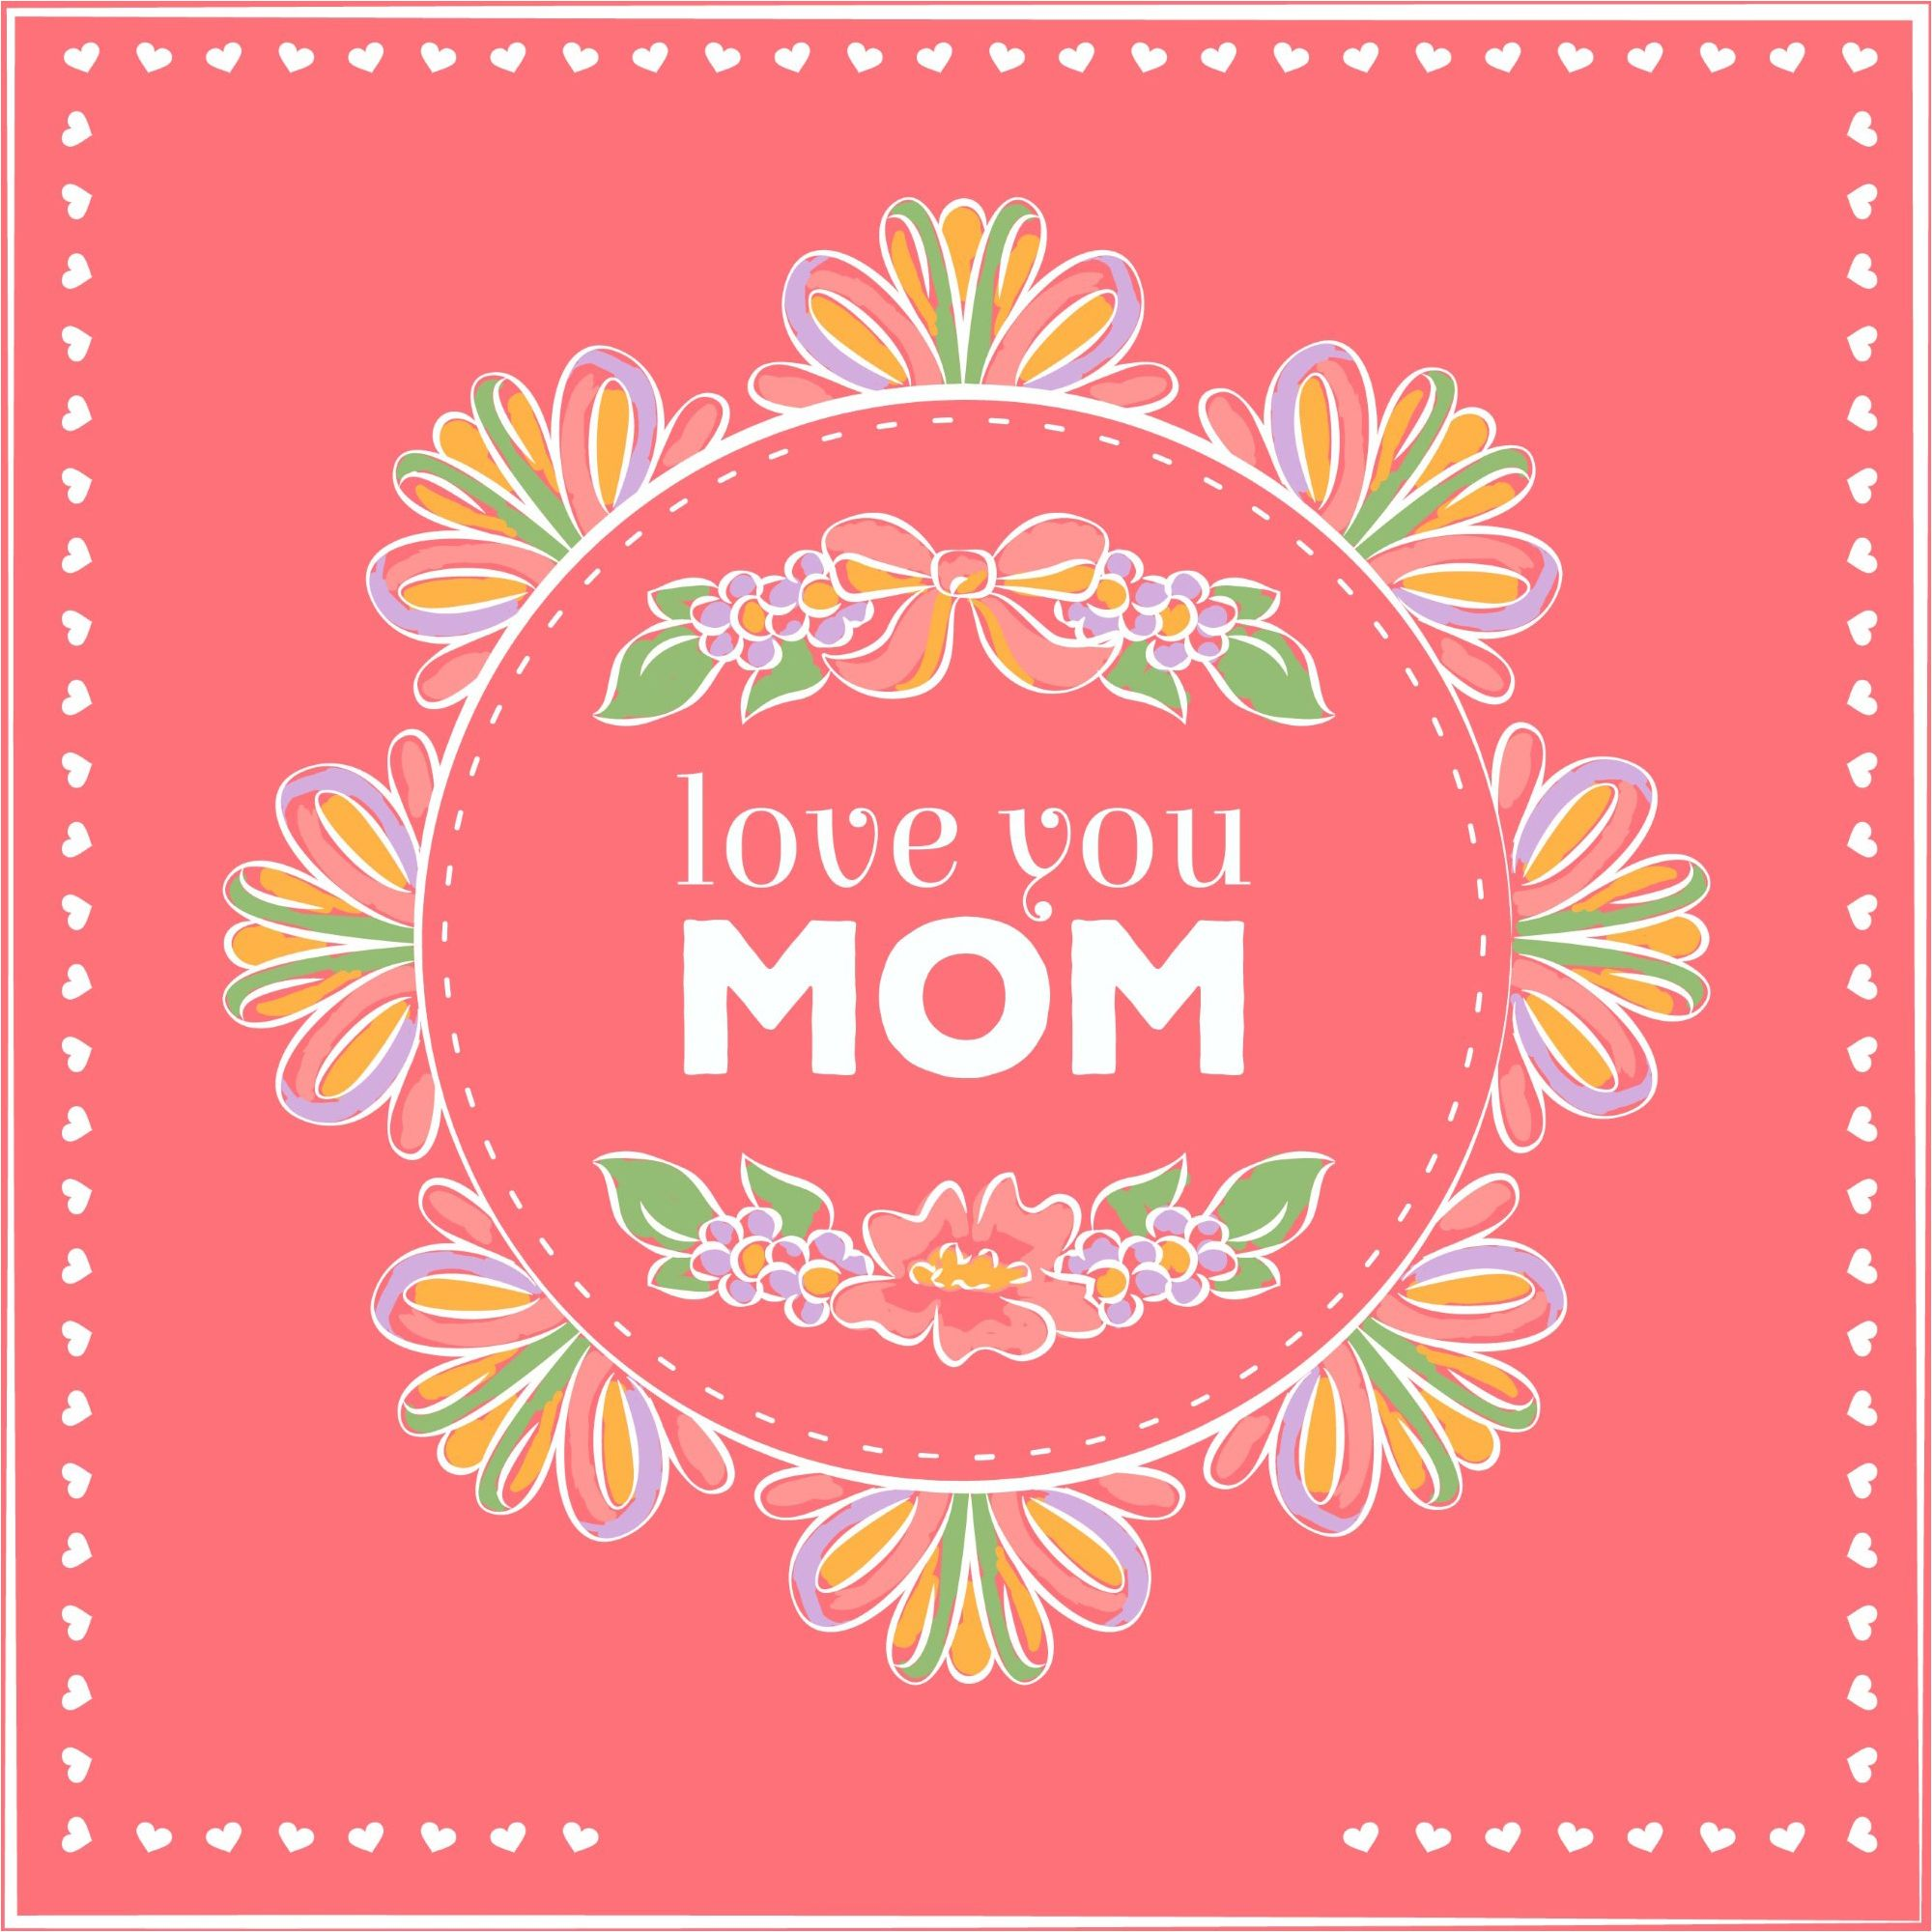 Love you mom happy mothers day greeting card design vector love you mom happy mothers day greeting card design vector wallpaper m4hsunfo